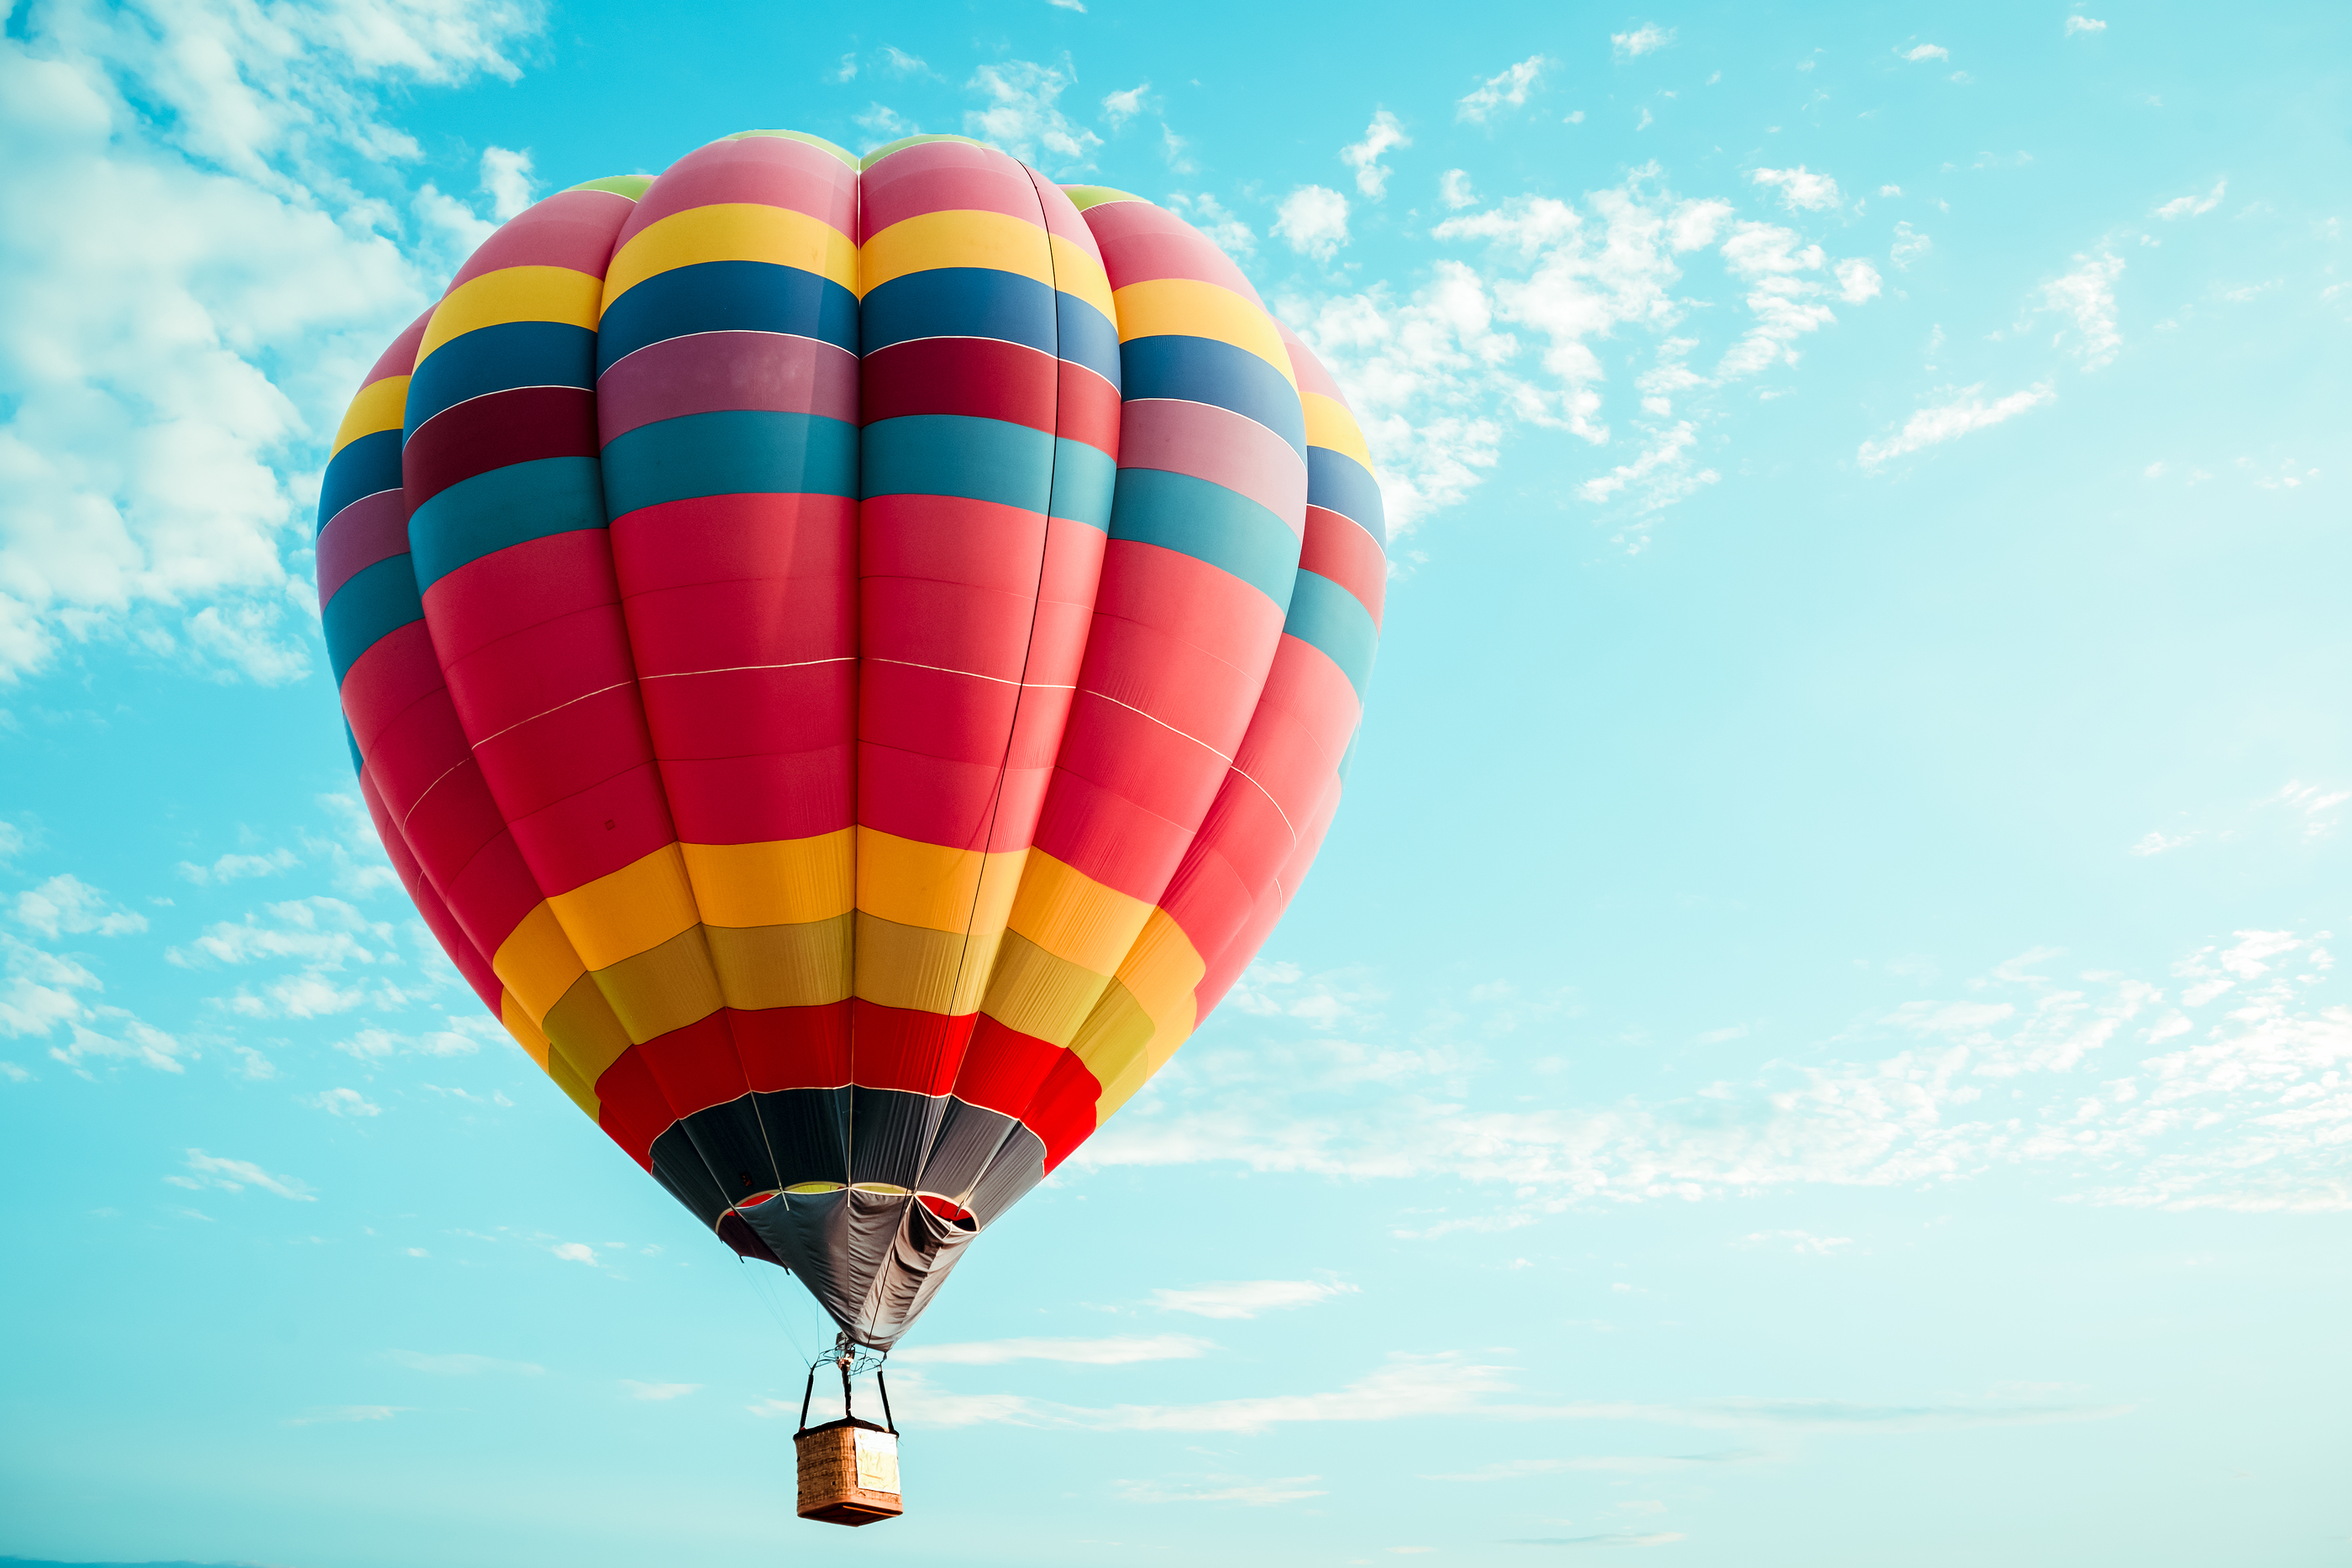 The Many Colors Of Hot Air Balloons